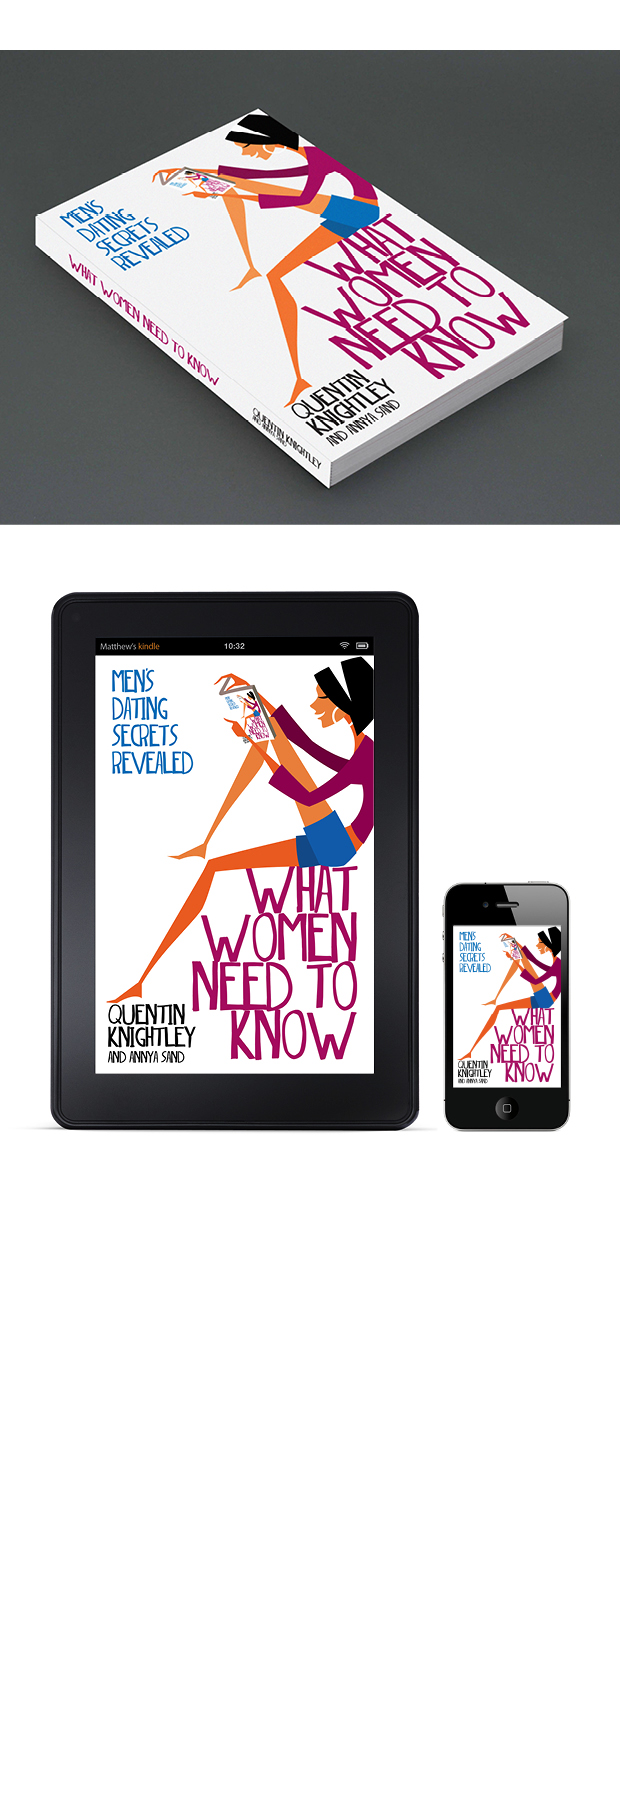 Self-Help Book Cover Design – What Women Need to Know